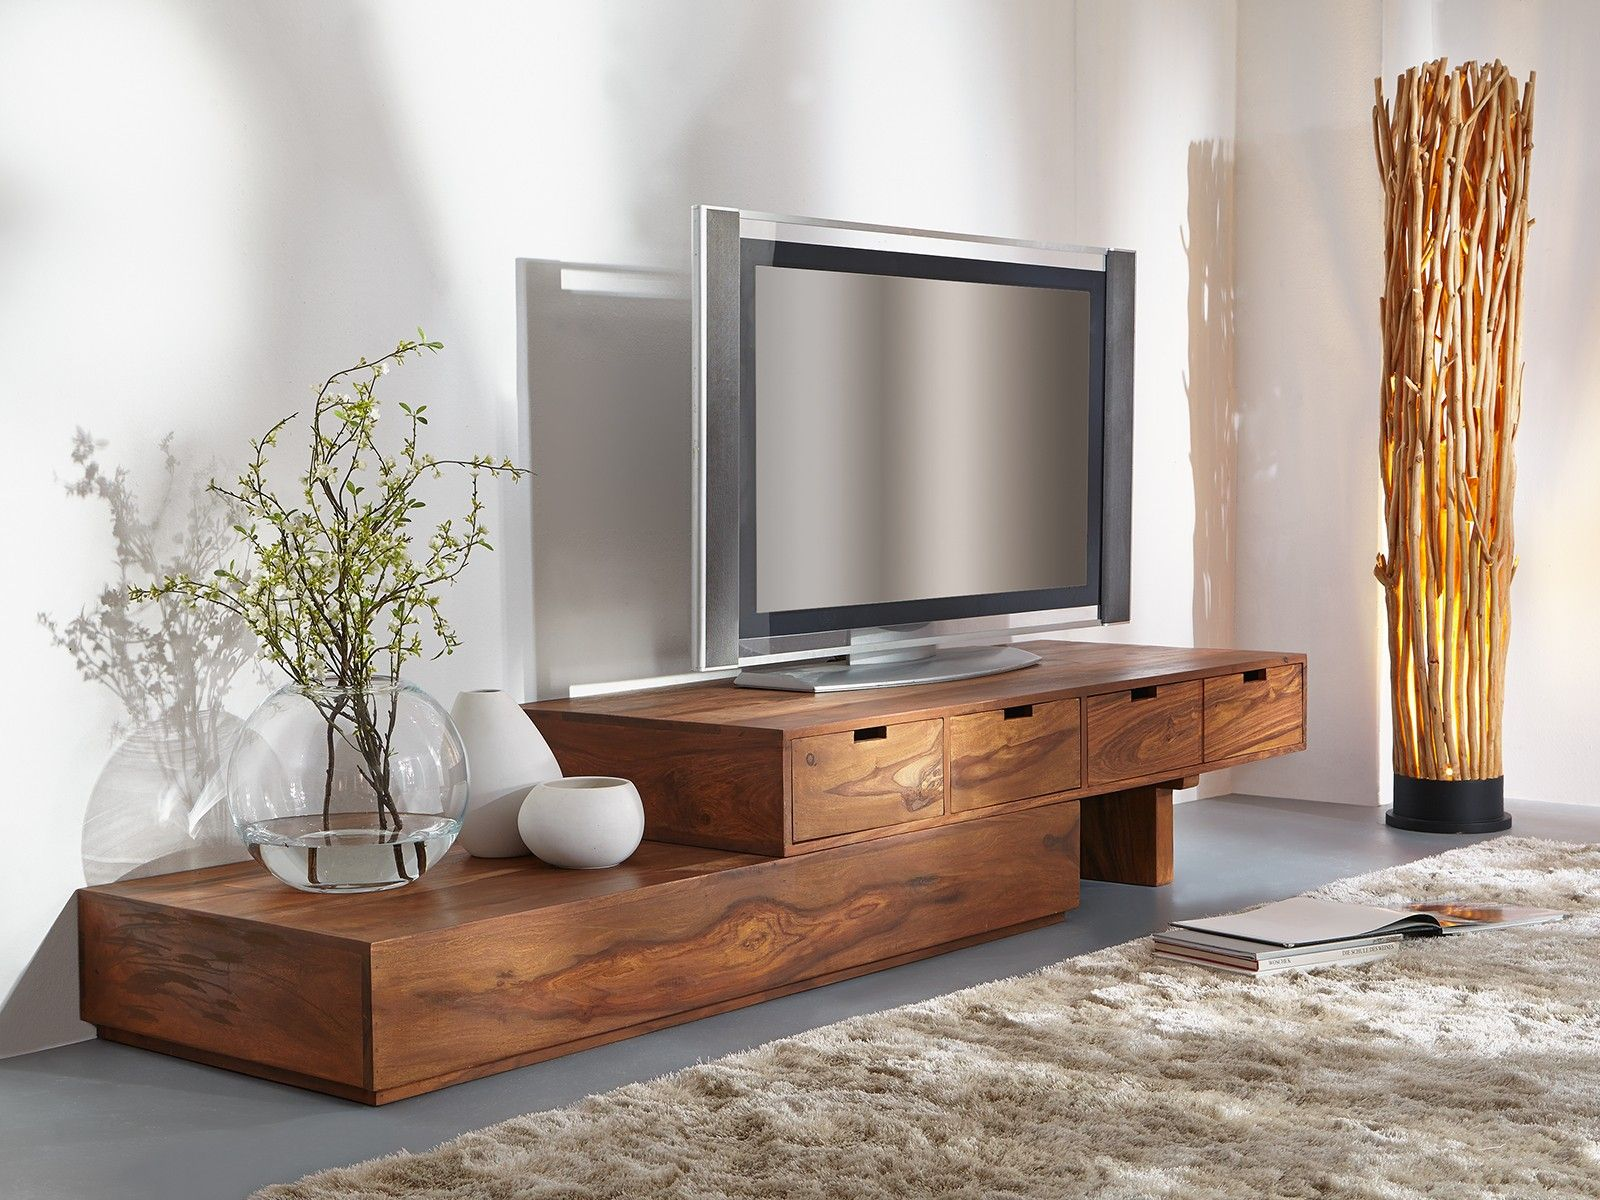 meuble tv asym trique country en palissandre miel 1 buffet pinterest meuble tv miel et tv. Black Bedroom Furniture Sets. Home Design Ideas